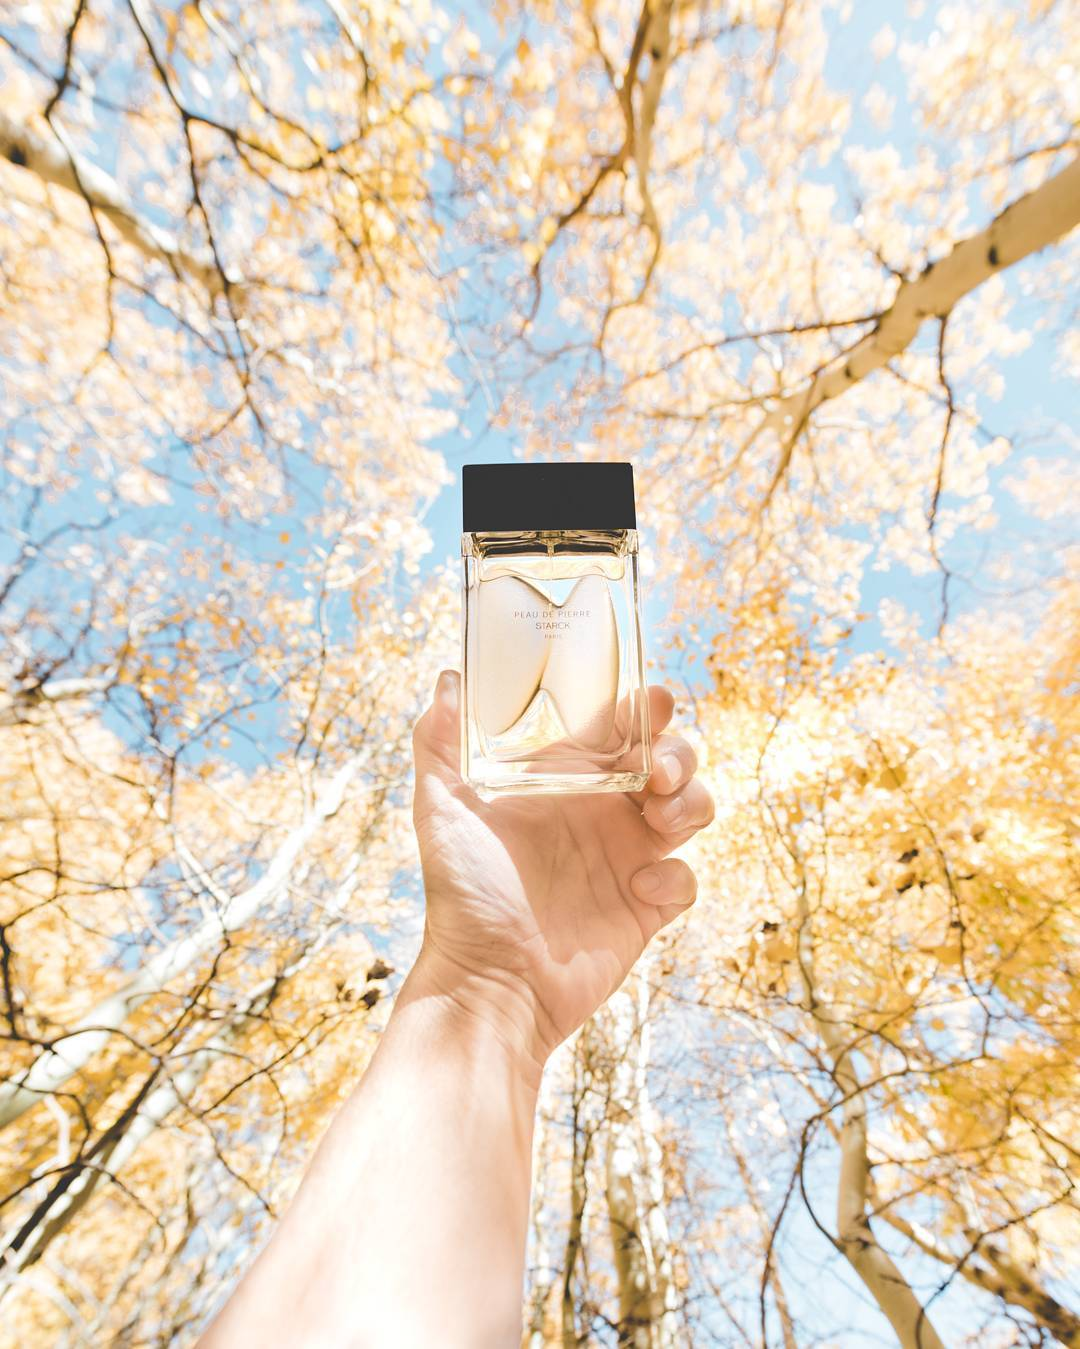 An image, an emotion, a place? Nature was the territory chosen by american photographer @jude_allen to portray Peau de Pierre. @starck Photo by @jude_allen  #StarckParfums #StarckParis #Starck #PhilippeStarck #PeauDePierre